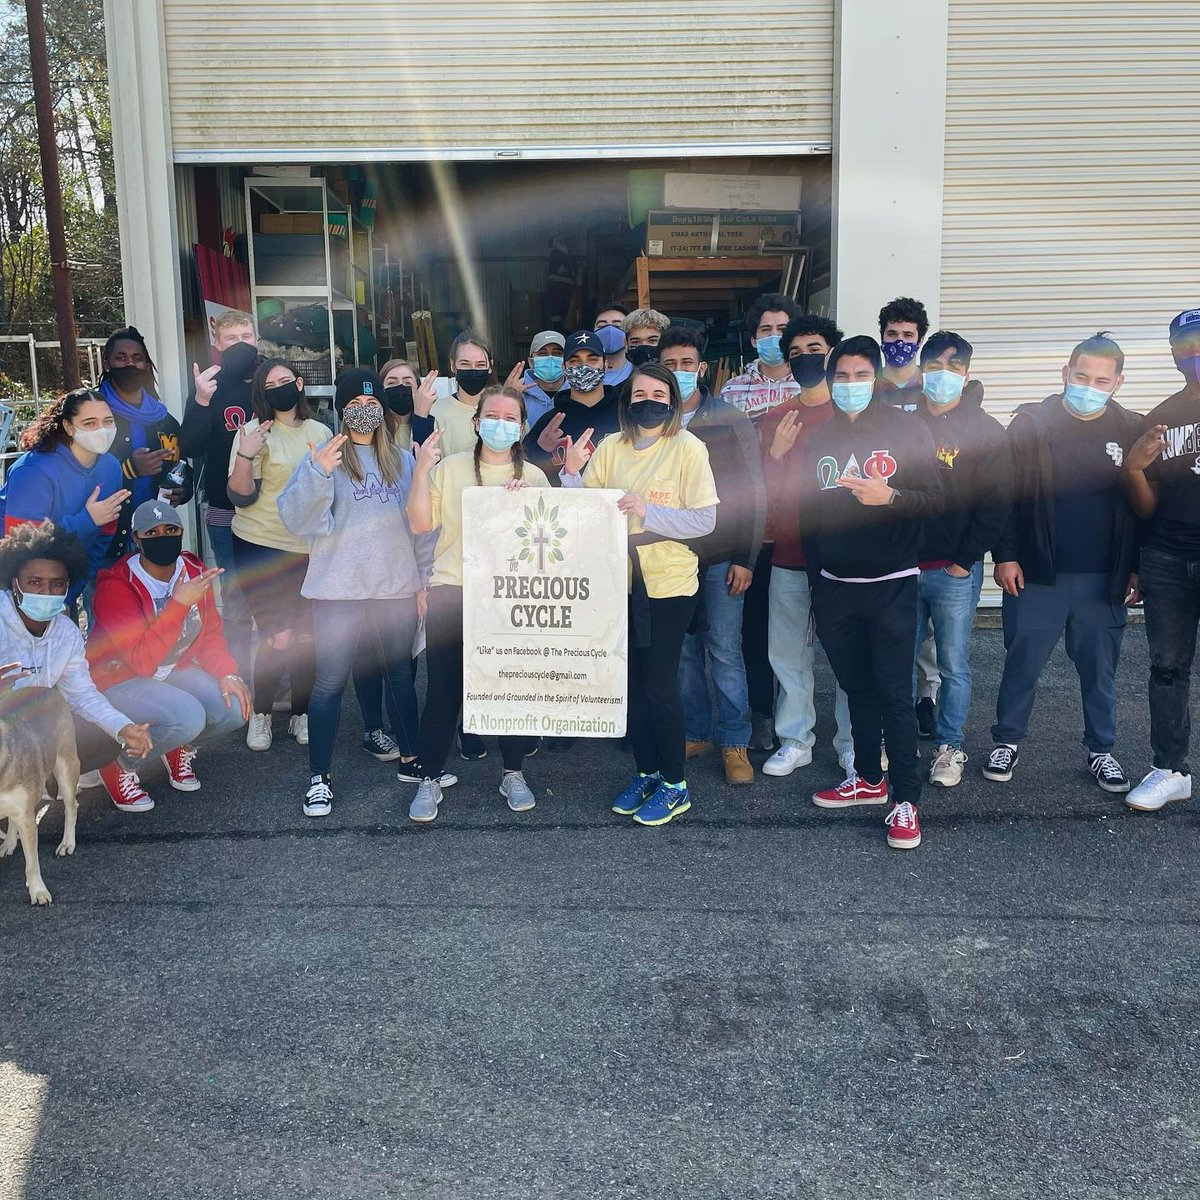 Members of the Alpha Omega chapter spent #MLKDay last week doing community service work with Precious Cycle. They did a fantastic job finding a way to remember the life of Martin Luther King Jr. and honor his mission!